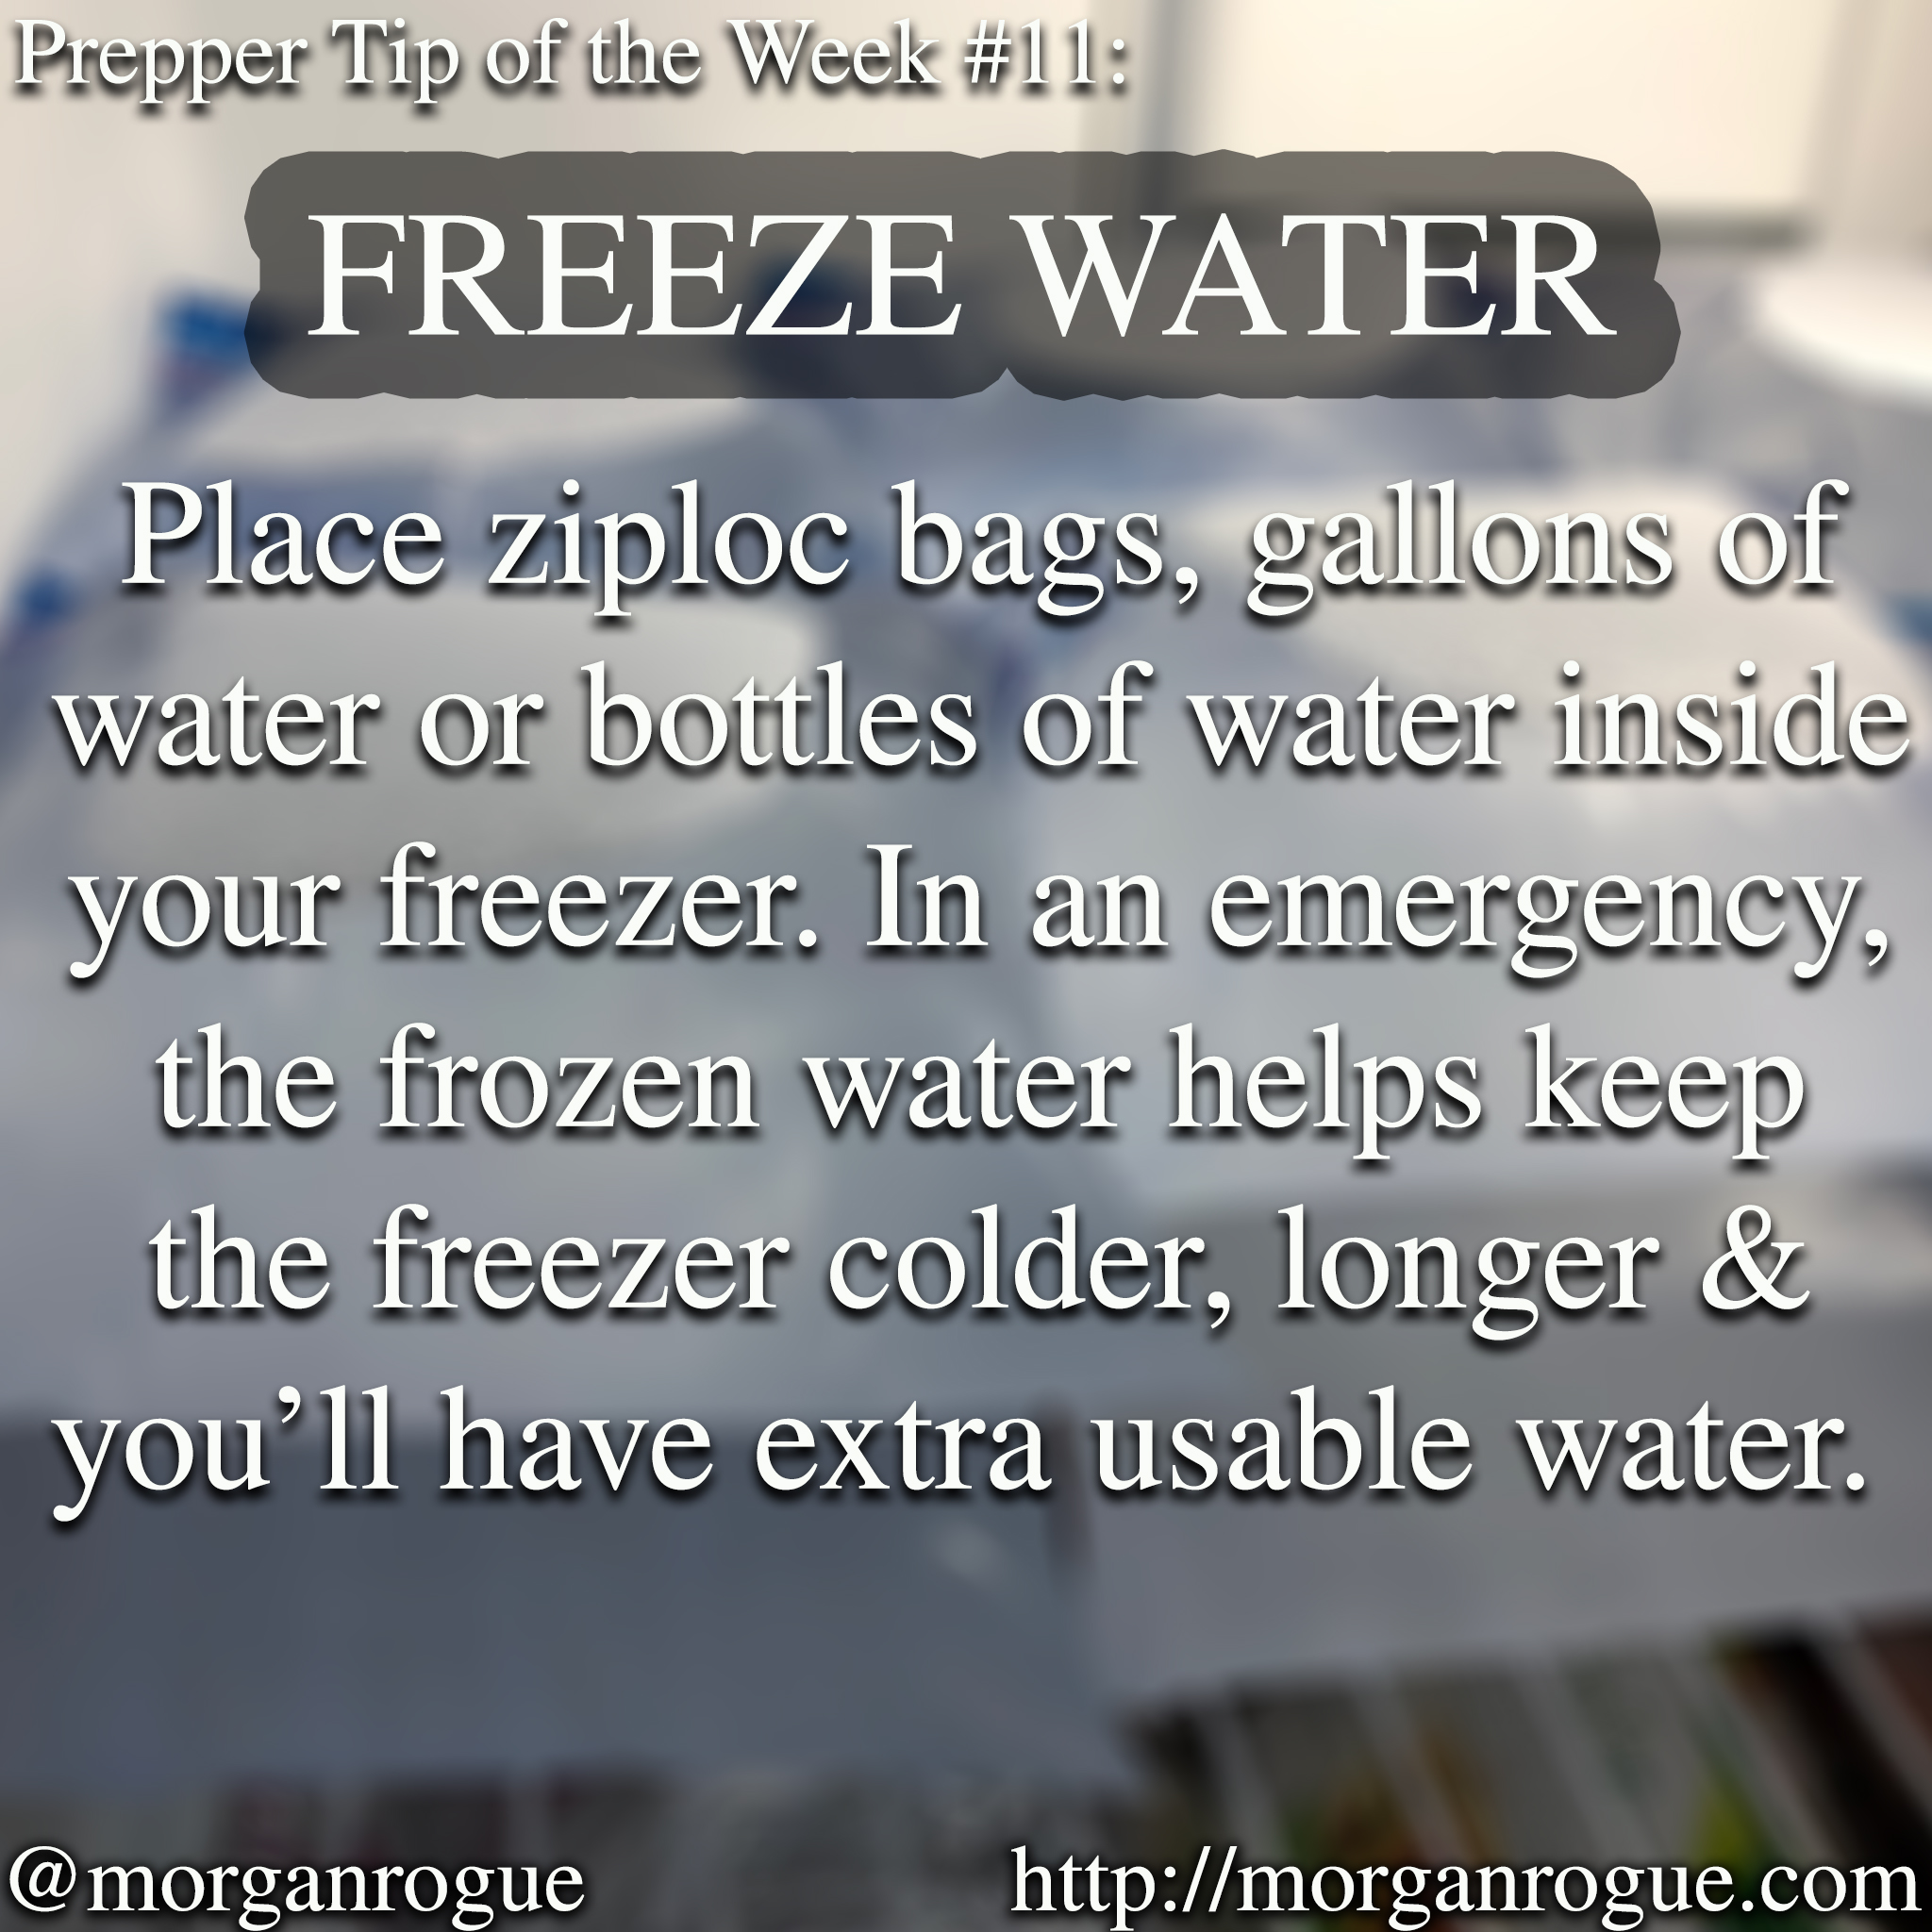 Prepping Tip of the Week 12/22/17 – Freeze Water for Emergencies